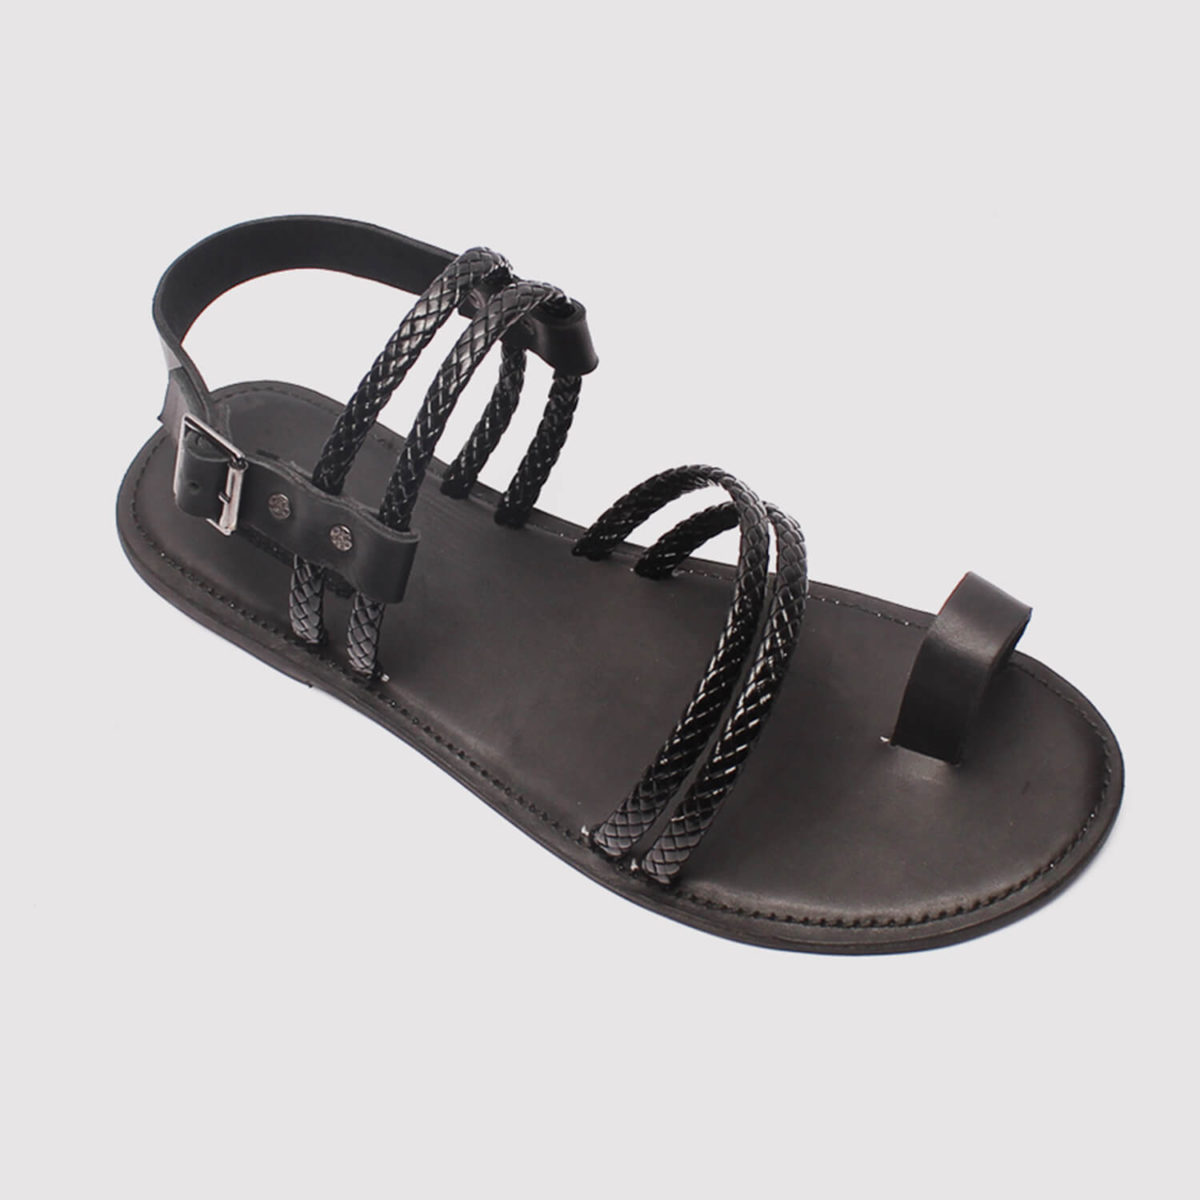 morsi black leather sandals zorkle shoes in lagos nigeria